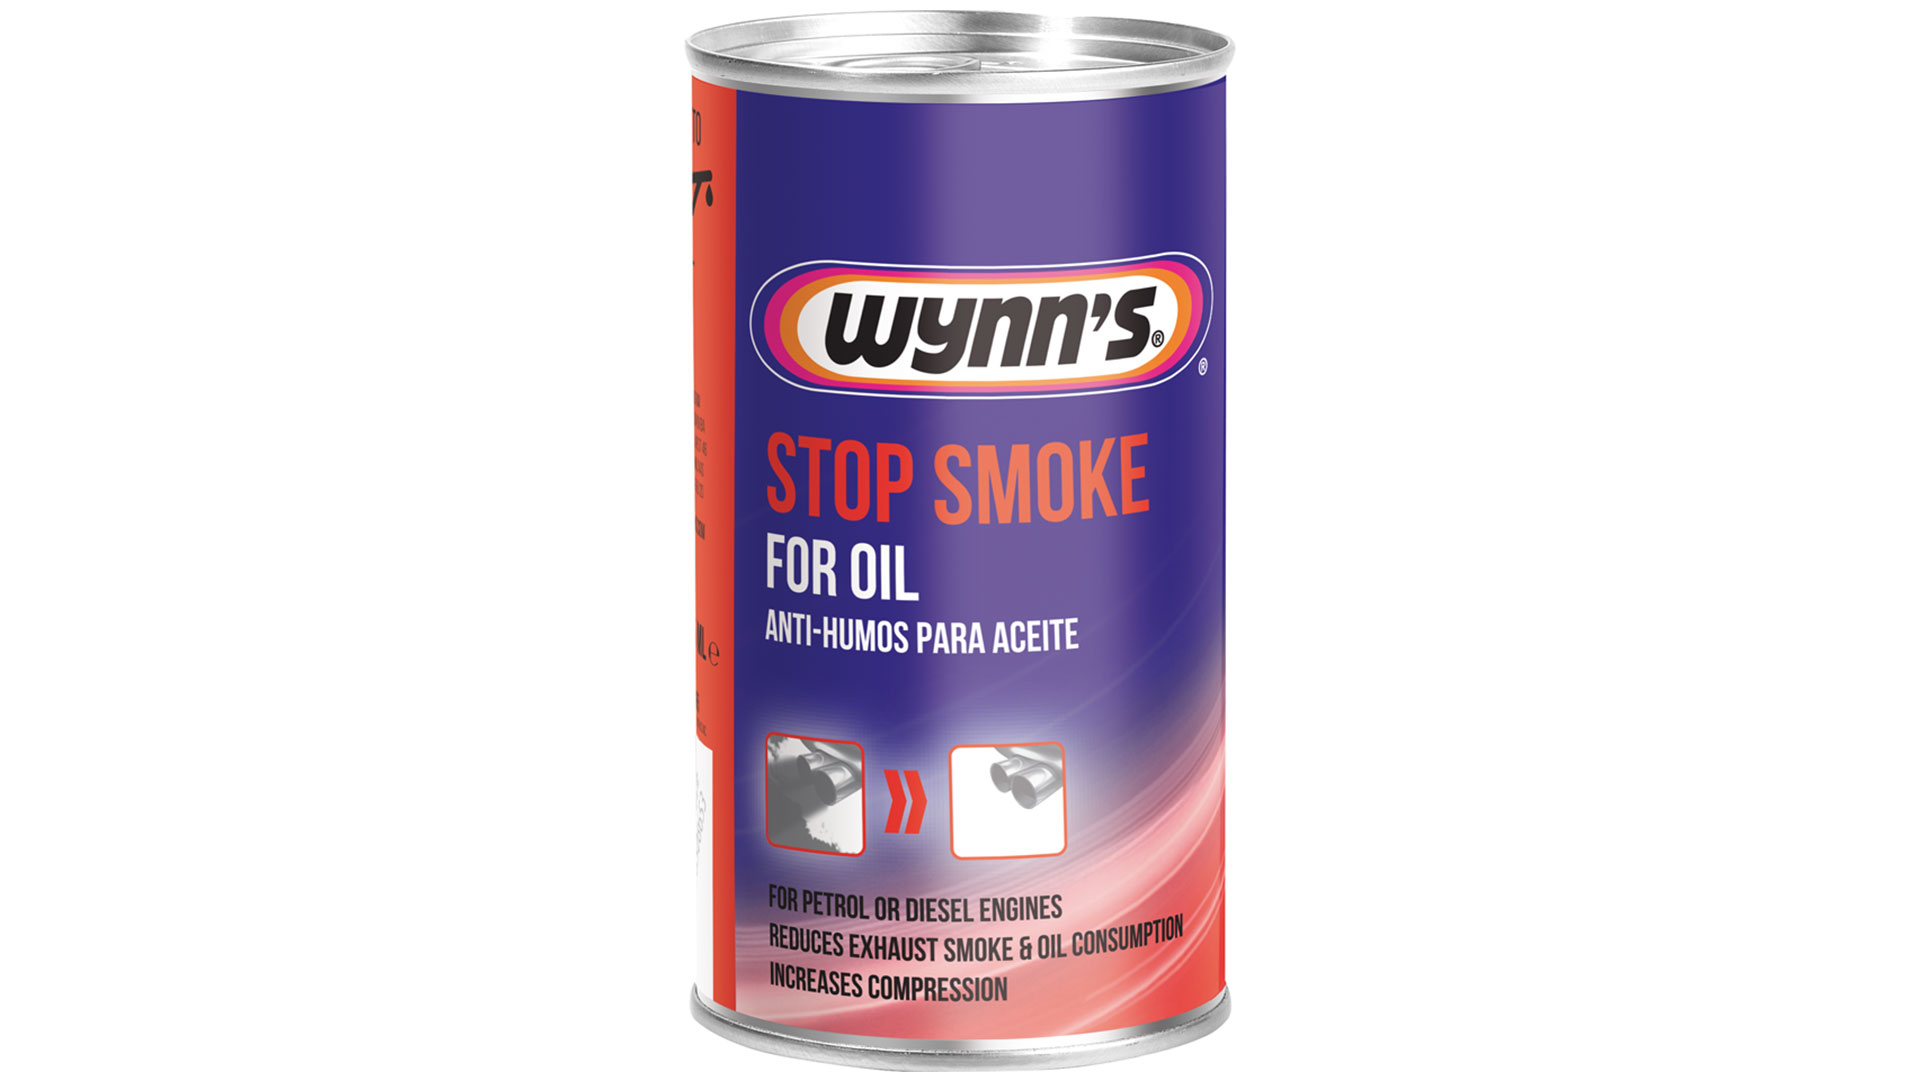 wynns oil stop smoke